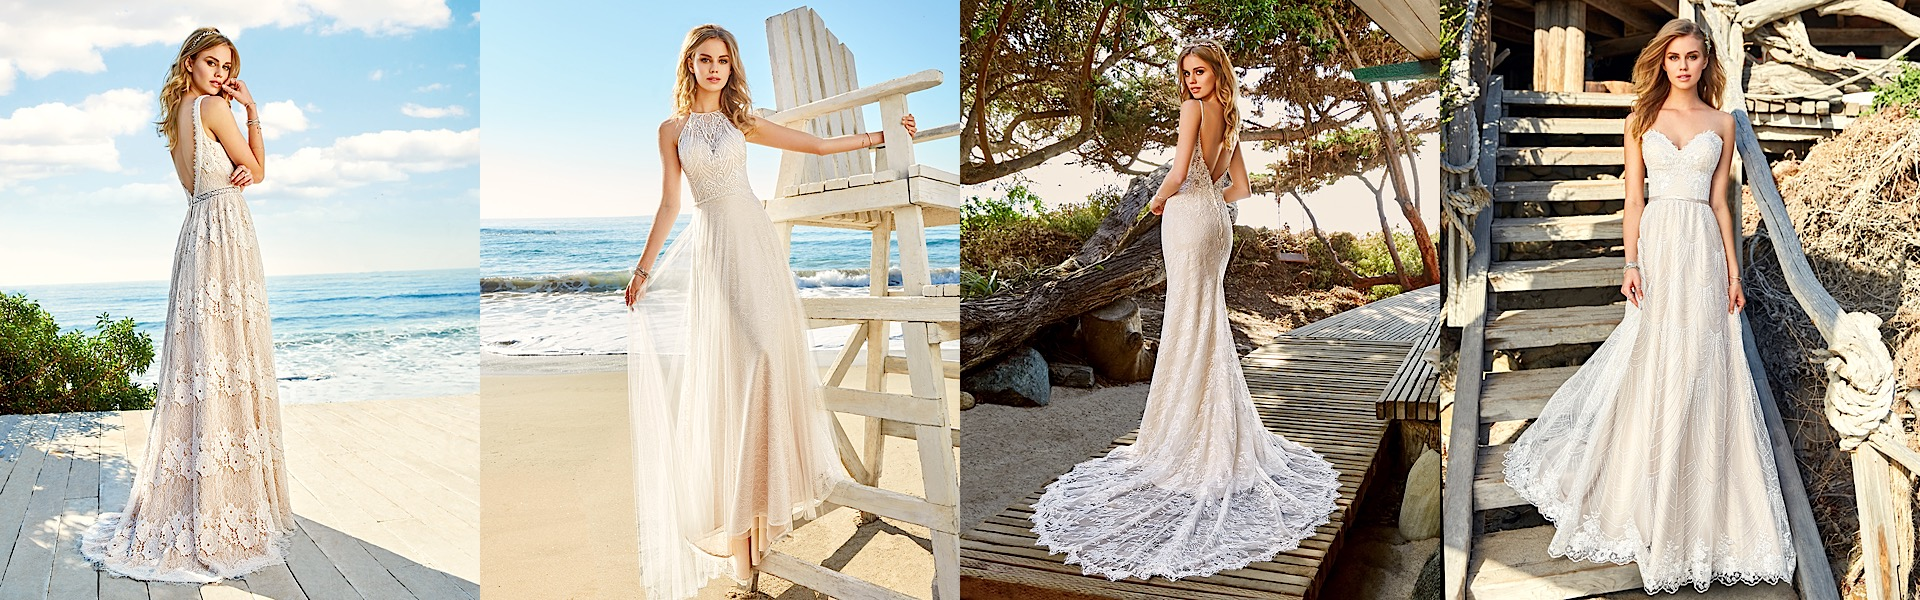 Romantic boho wedding dresses from the simply val stefani collection romantic boho wedding dresses from the simply val stefani collection junglespirit Choice Image